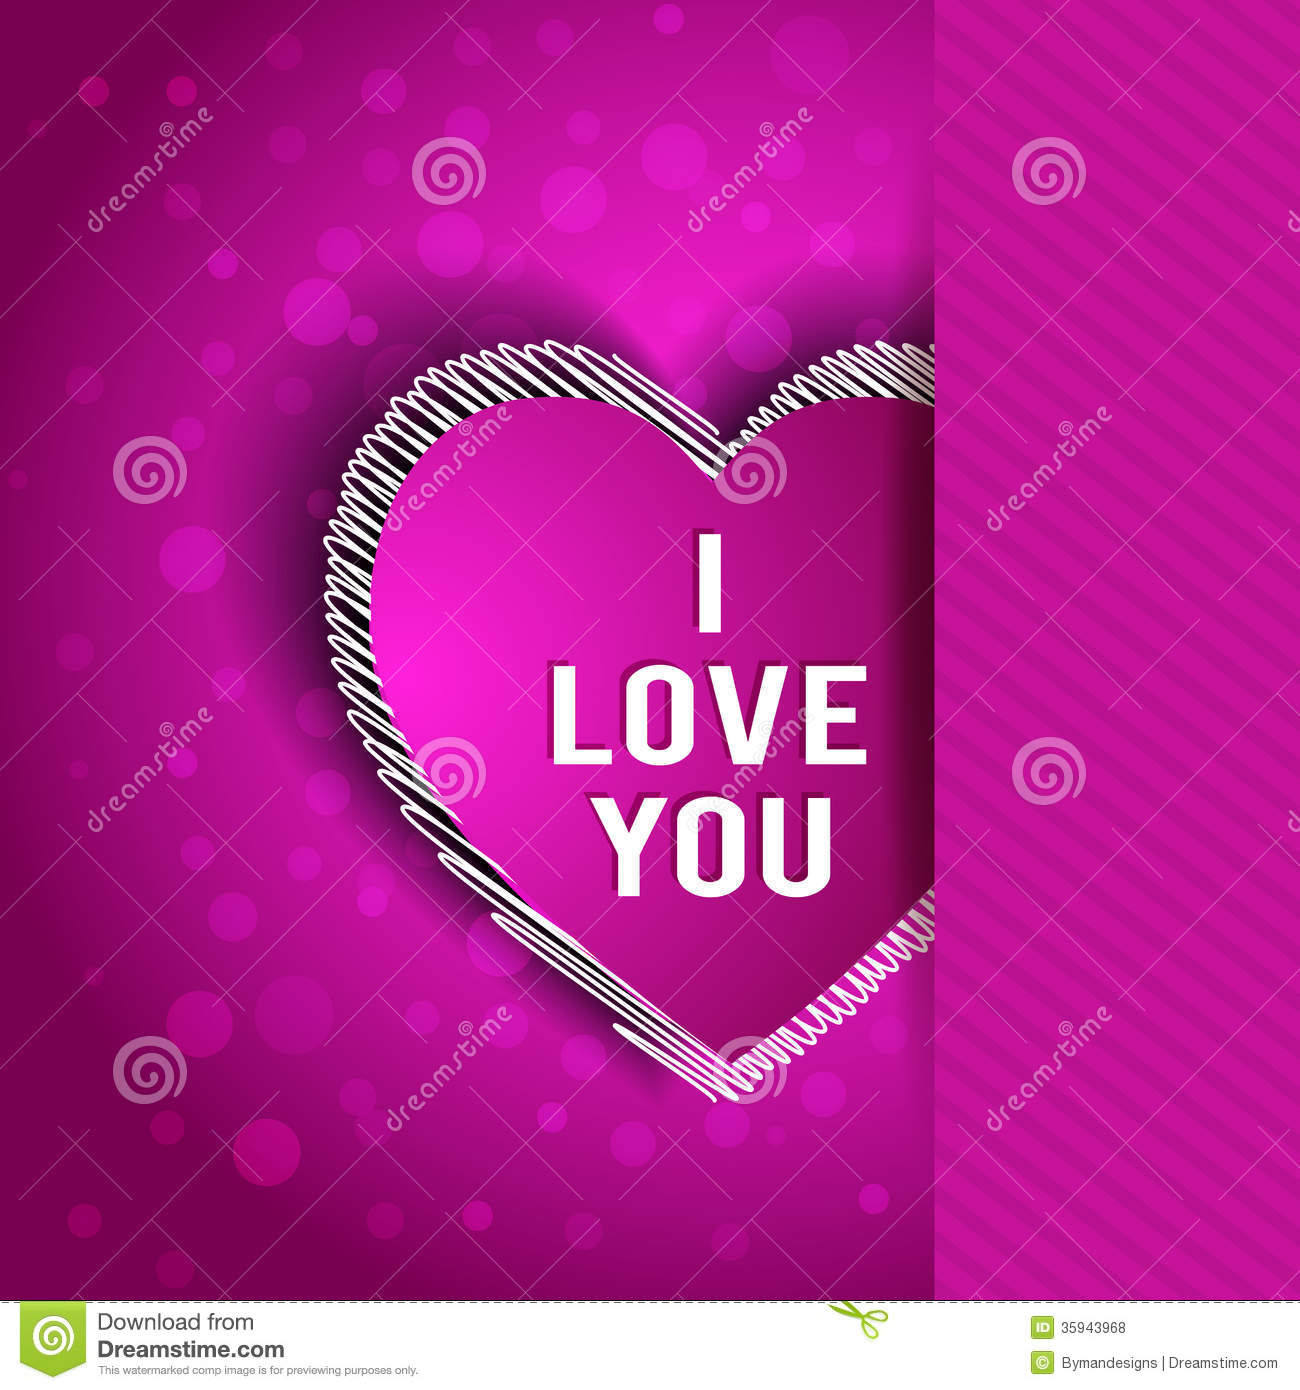 I Love You Greeting Card Stock Vector Illustration Of Design 35943968